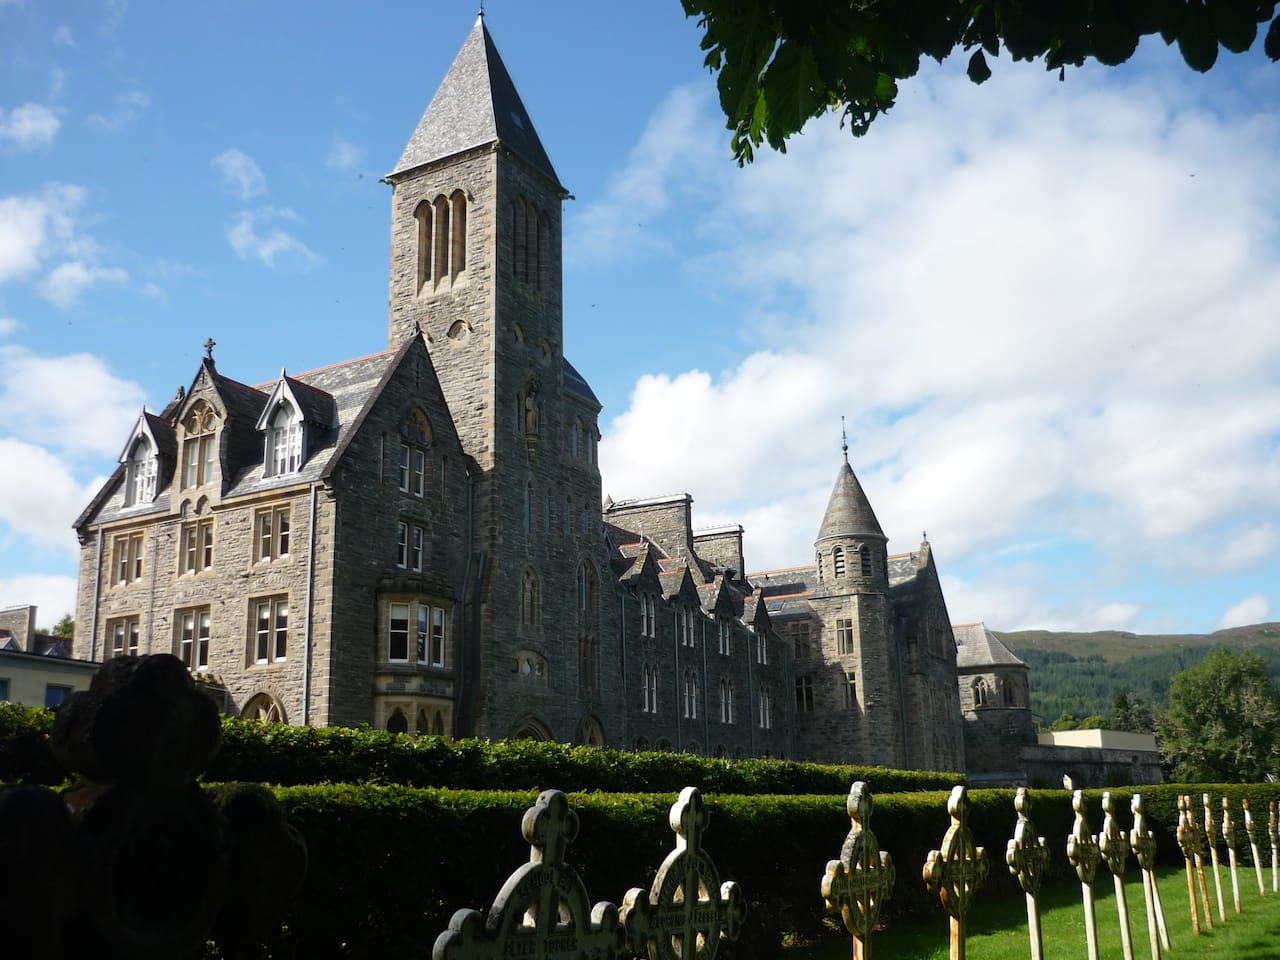 St Benedict's Abbey now called the Highland Club